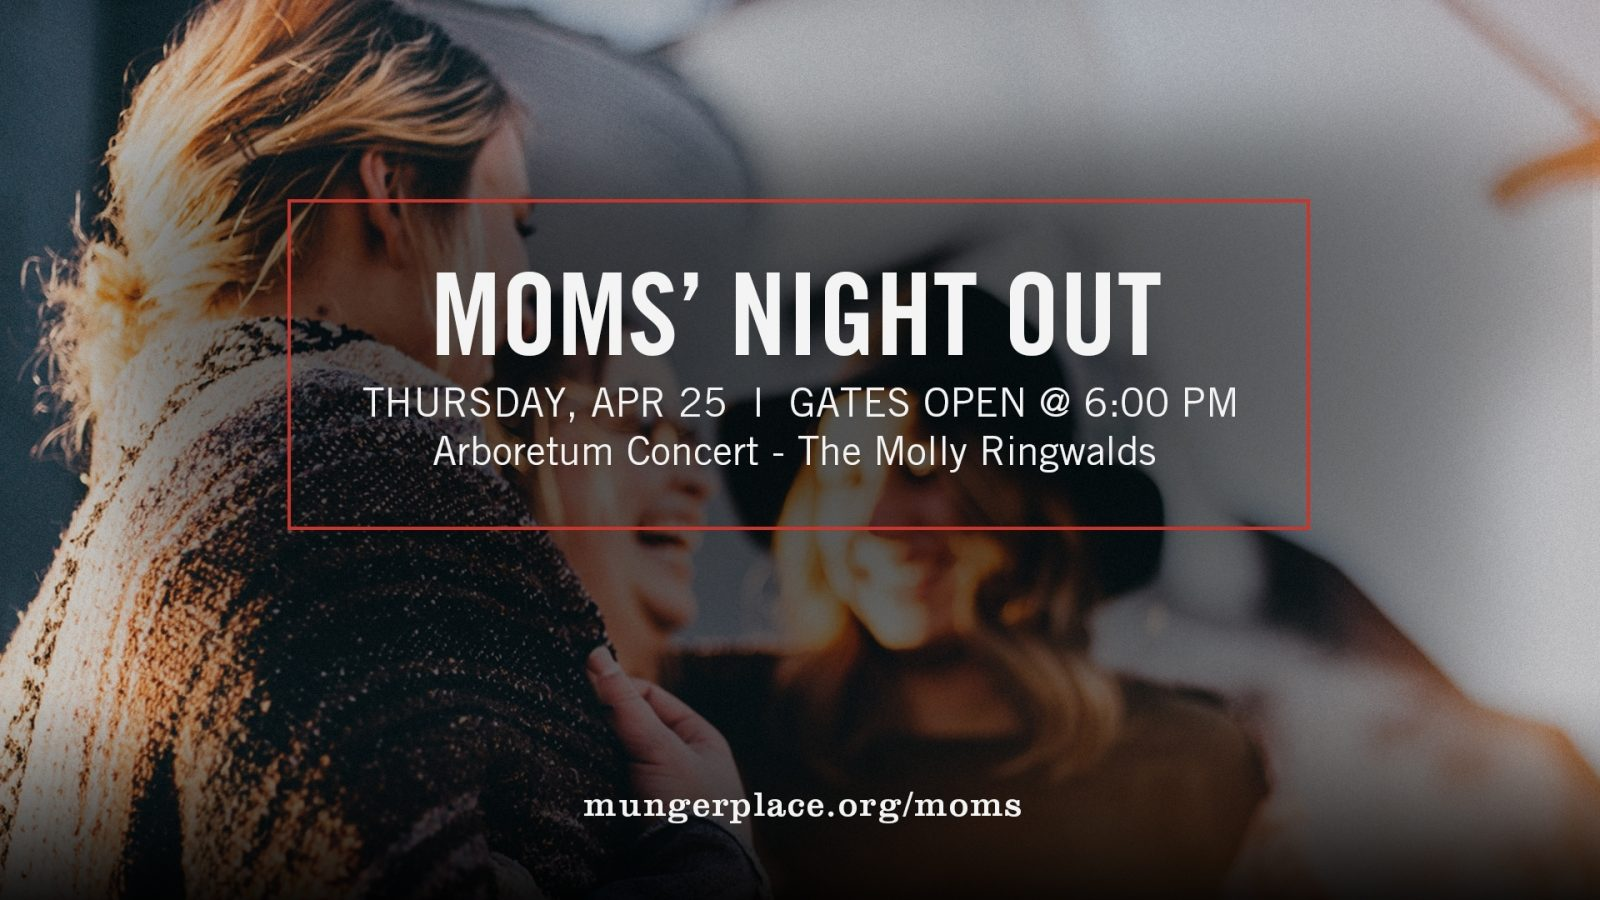 Moms Night Out - The Molly Ringwalds